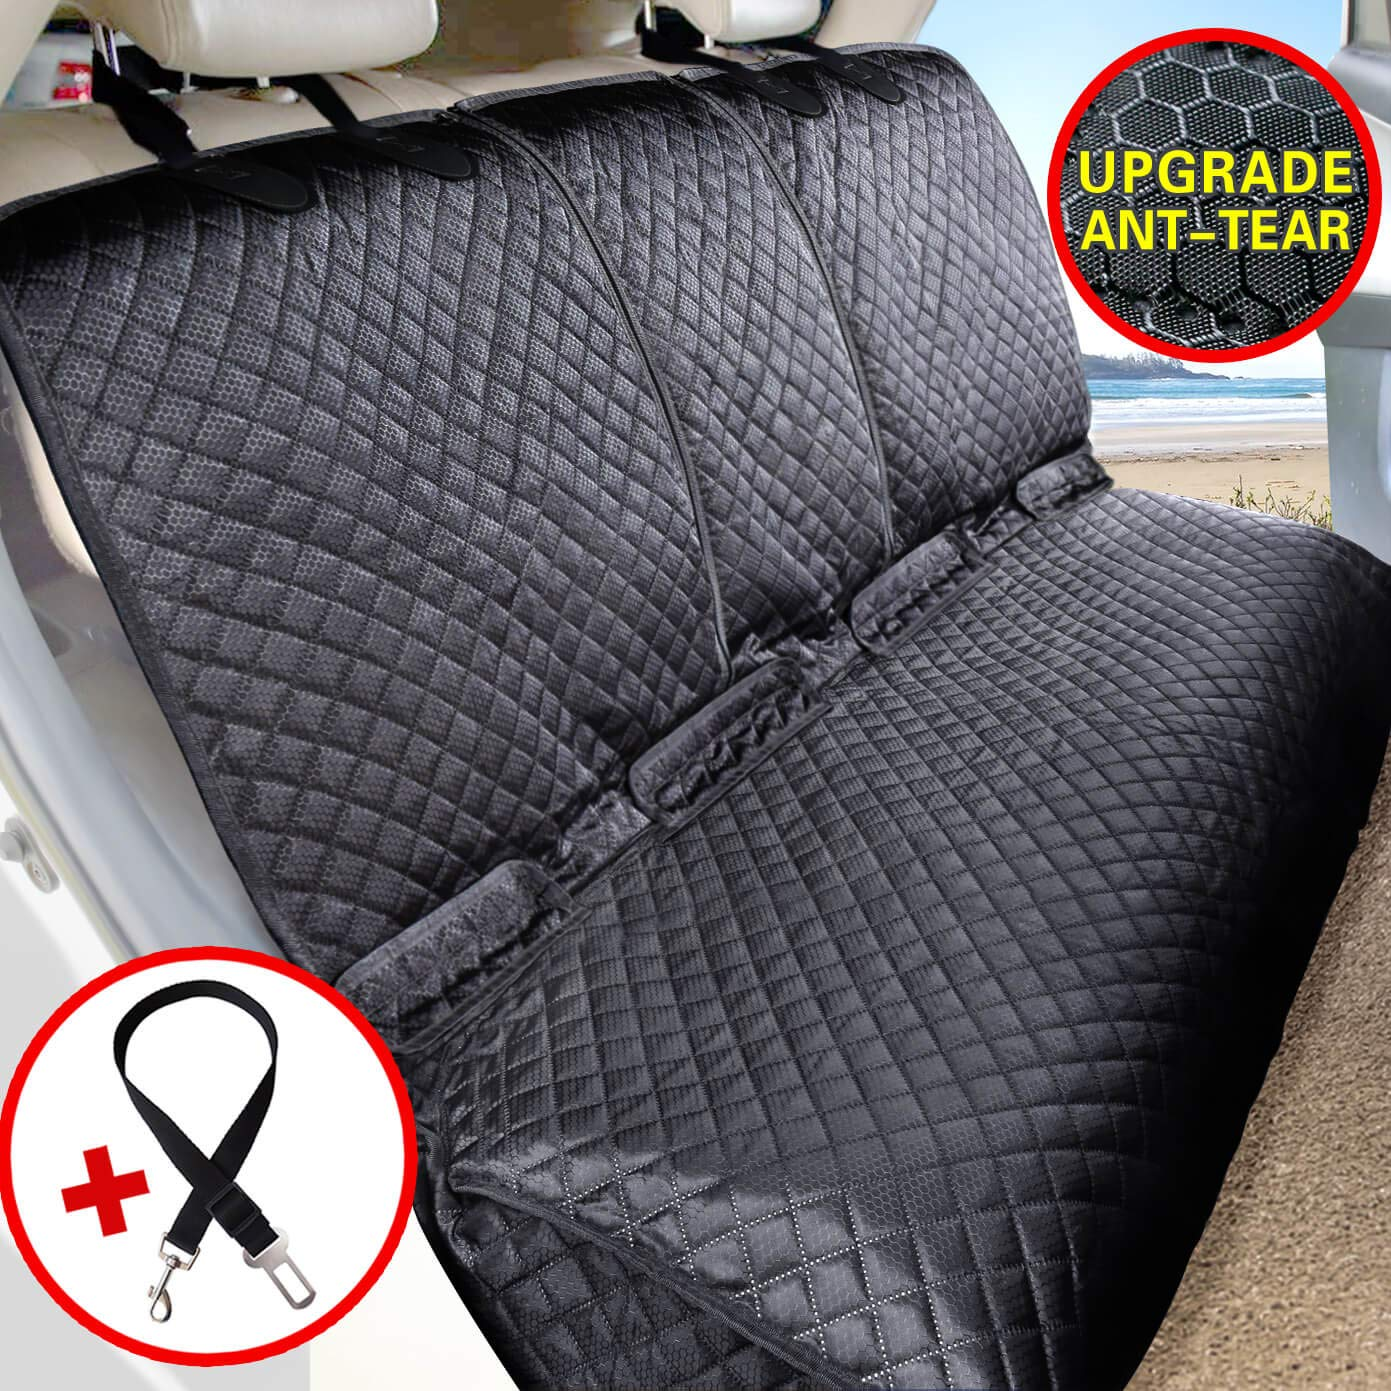 Vailge Bench Dog Seat Cover for Back Seat, 100% Waterproof Dog Car Seat Covers, Heavy-Duty & Nonslip Back Seat Cover for Dogs,Washable & Compatible Pet Car Seat Cover for Cars, Trucks & SUVs by Vailge